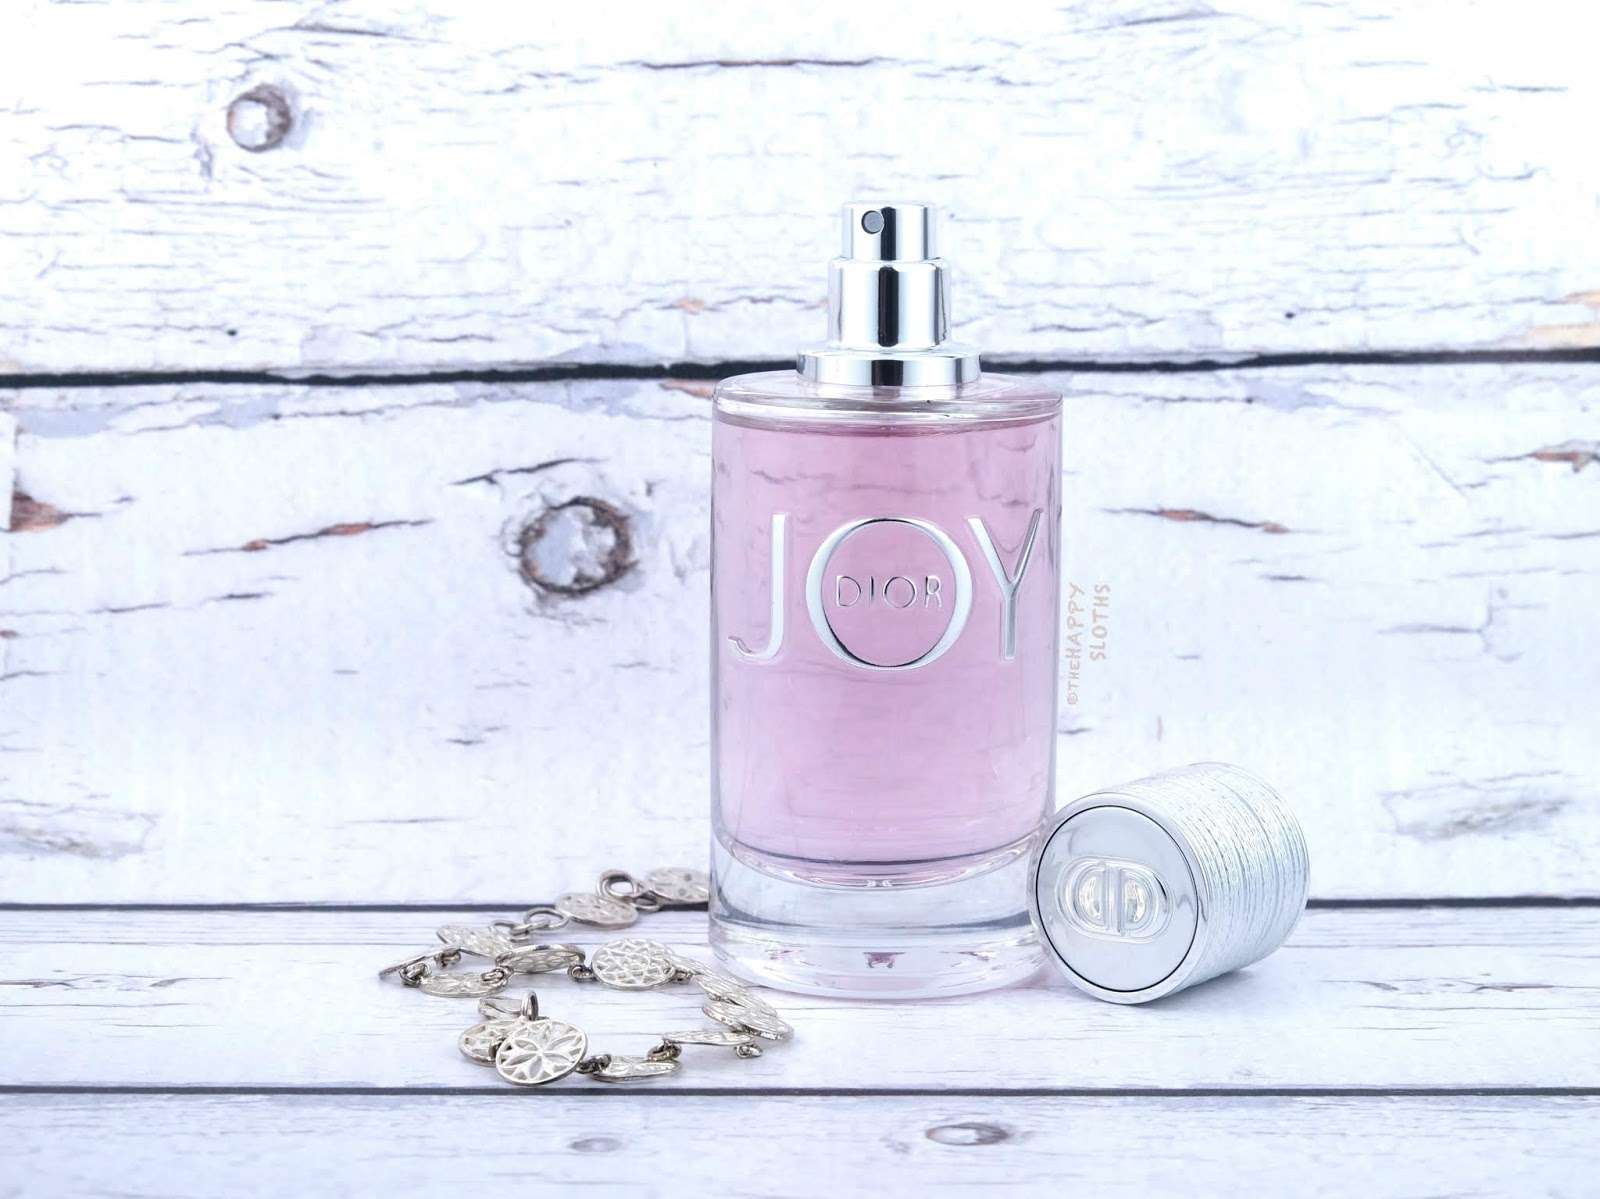 Dior | Joy by Dior Eau de Parfum: Review